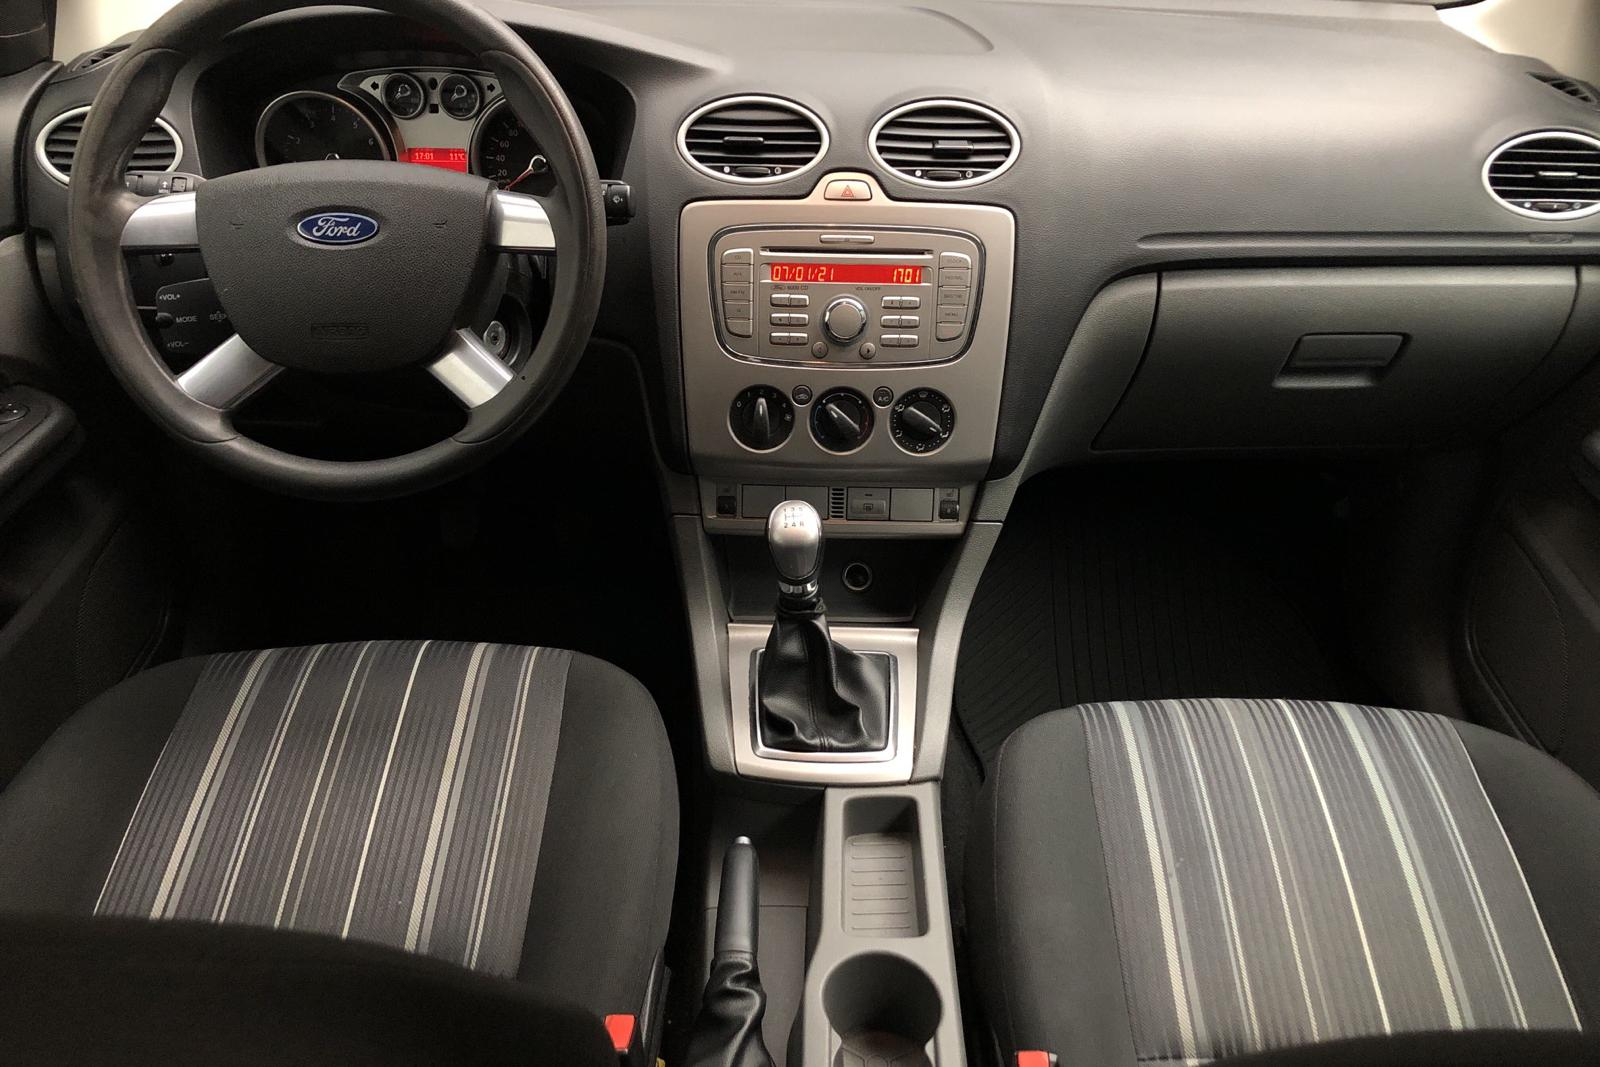 Ford Focus 1.8 Flexifuel 5dr (125hk) - 150 920 km - Manual - white - 2009